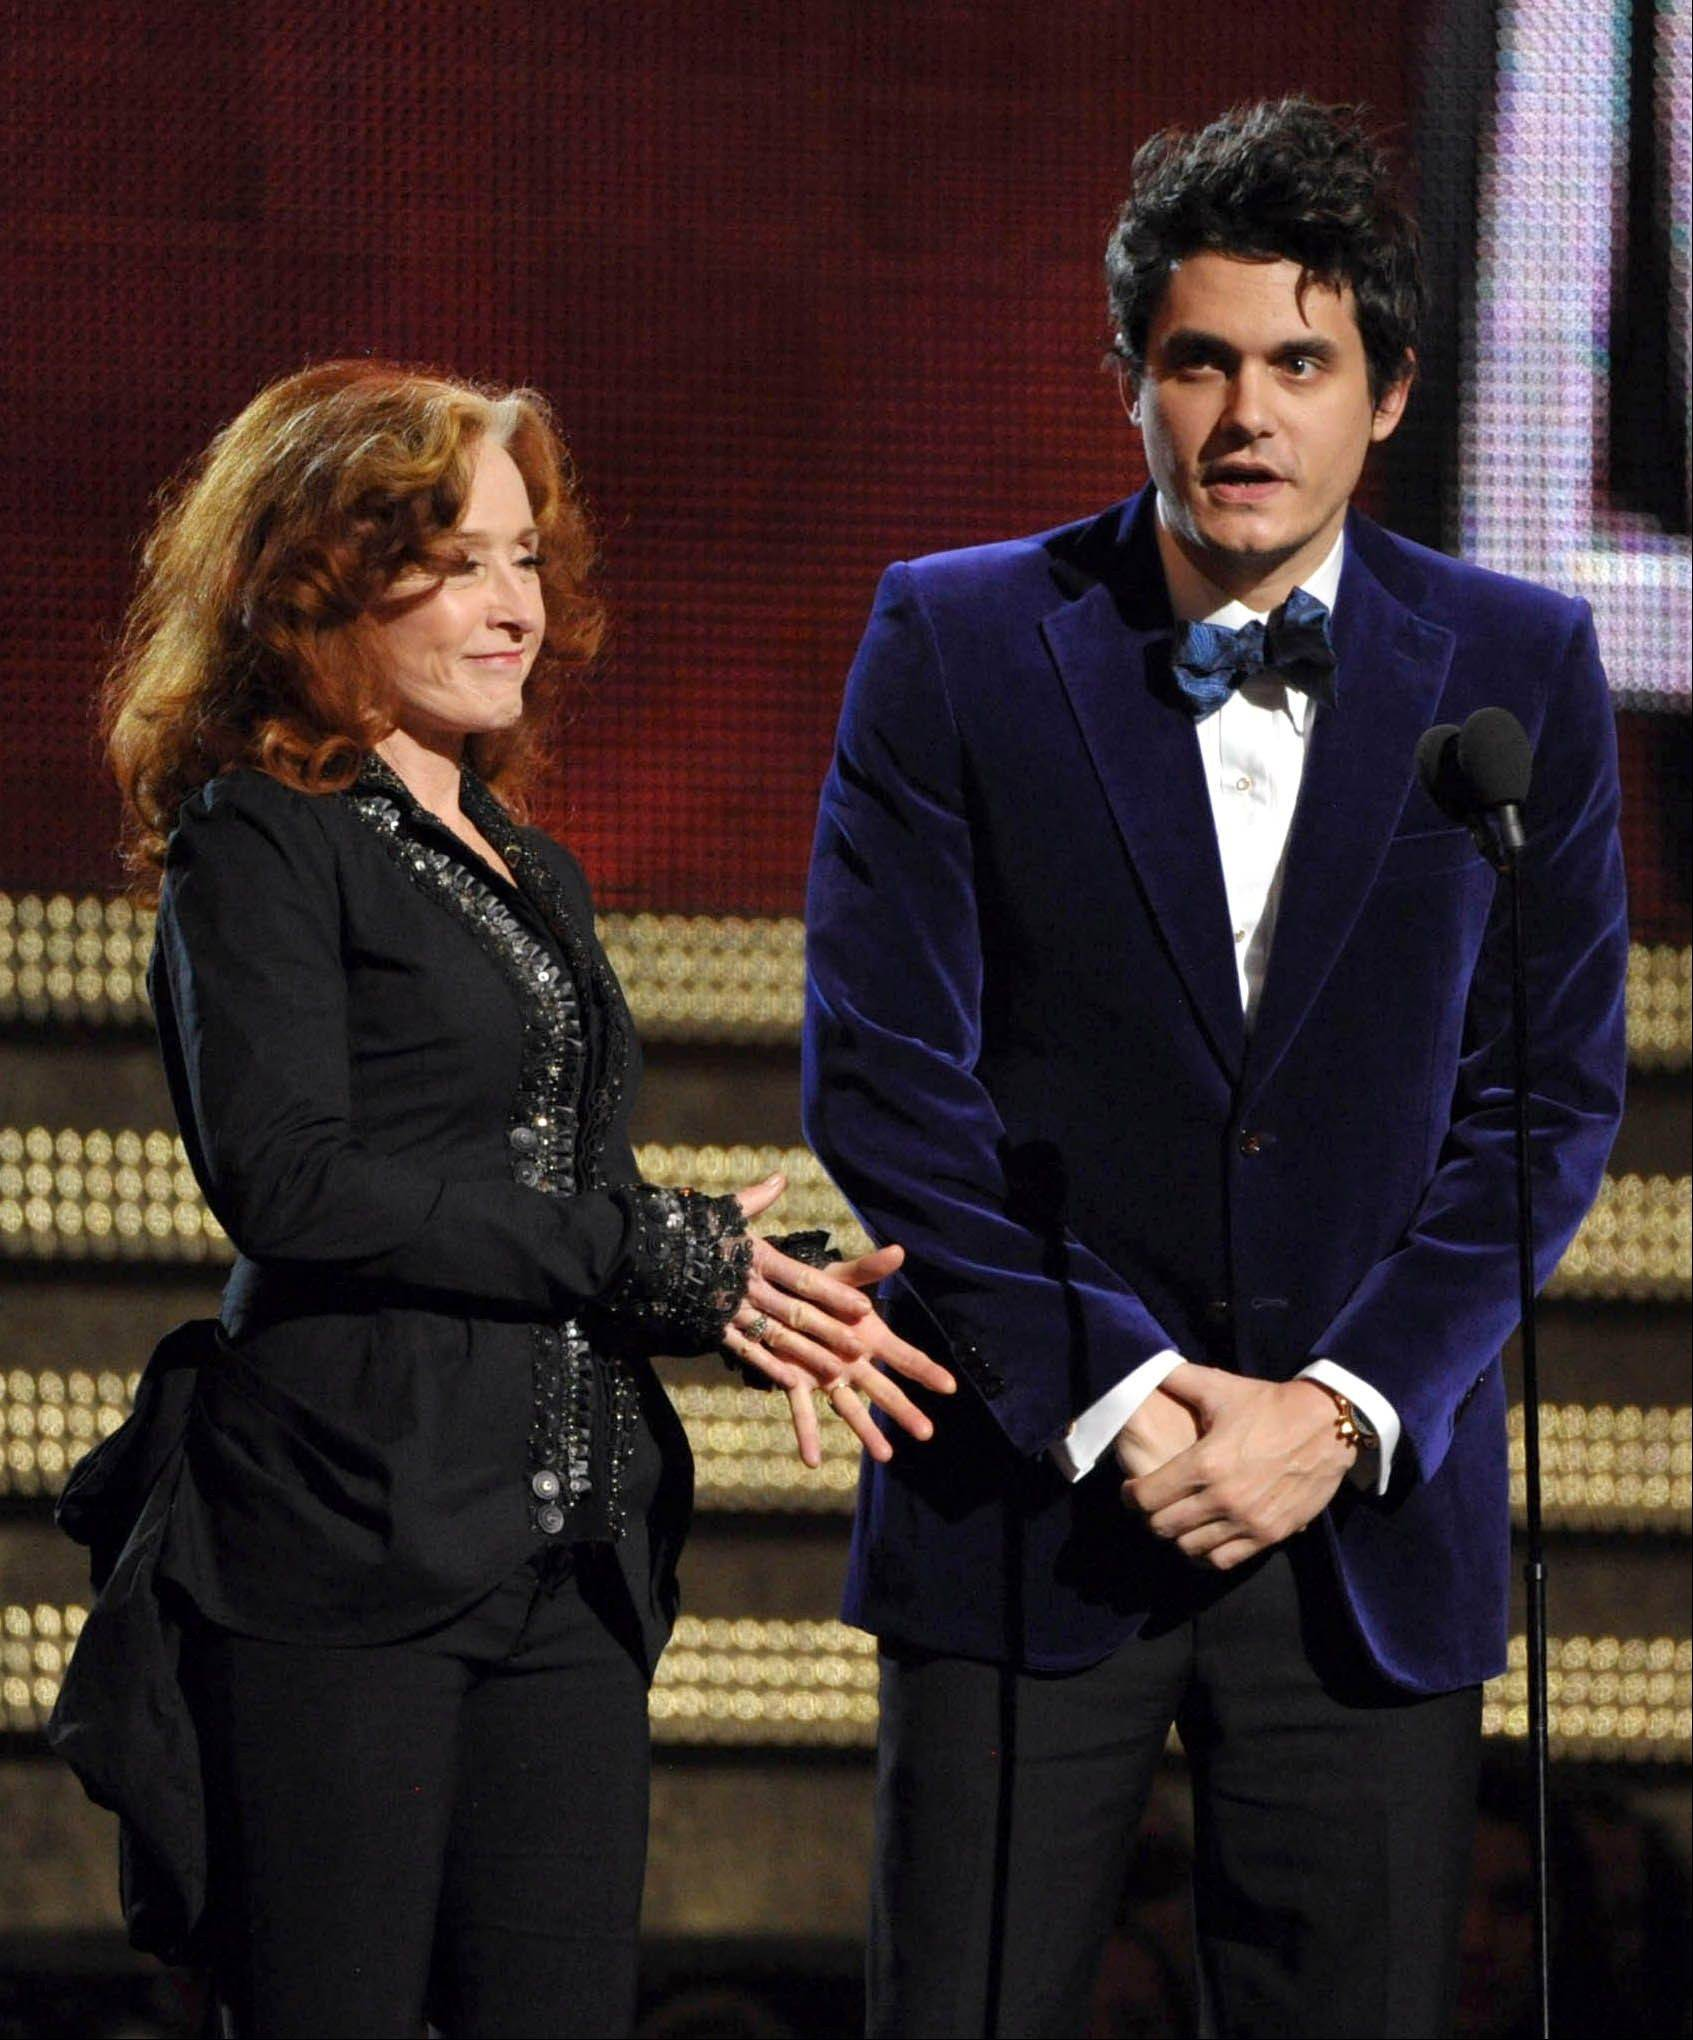 Musicians Bonnie Raitt and John Mayer present at the 55th annual Grammy Awards on Sunday, Feb. 10, 2013, in Los Angeles.